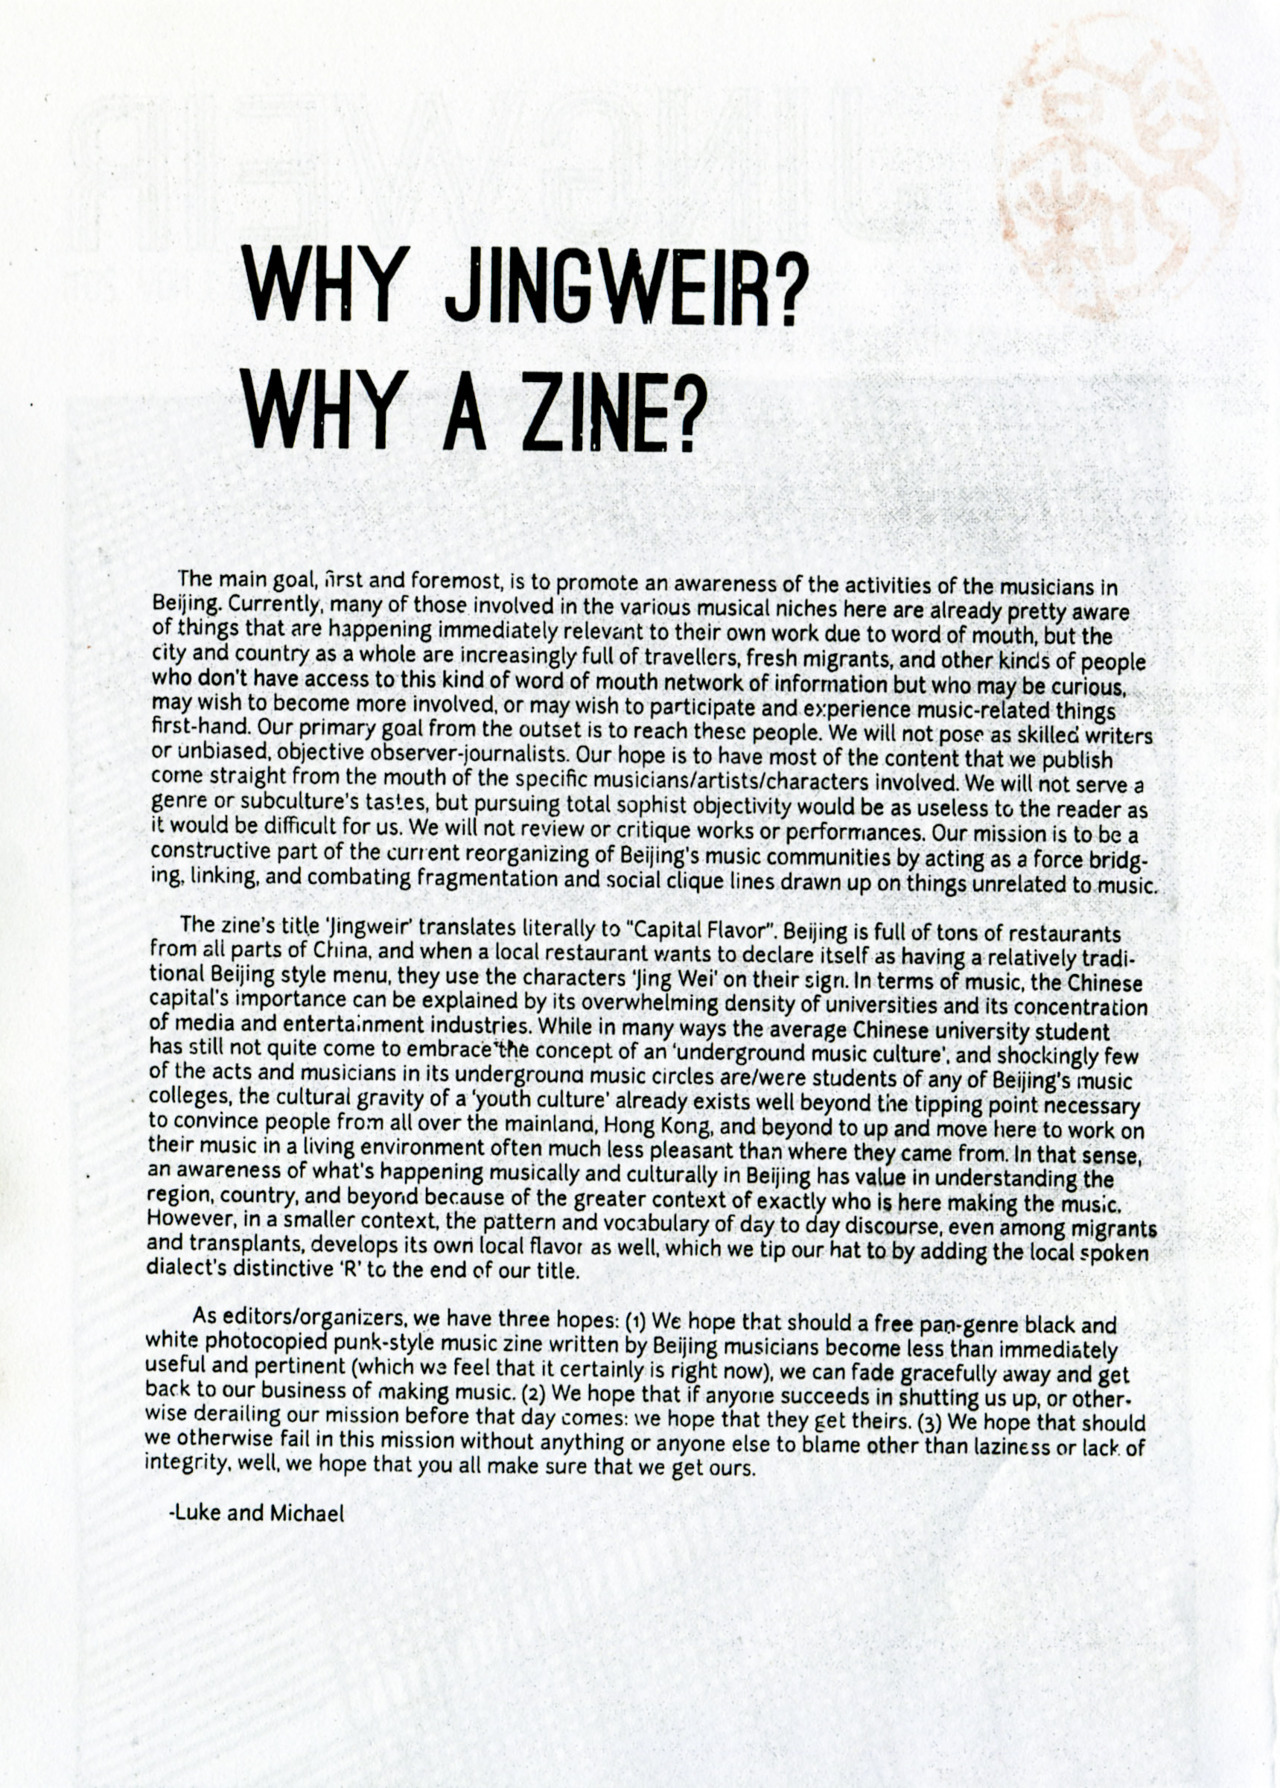 JINGWEIR issue #1 inside cover 'from the editors' full issue #1 pdf: http://www.keepandshare.com/doc/3664464/jingweir-issue-1-nov-2011-pdf-march-12-2012-12-37-pm-4-5-meg?da=y